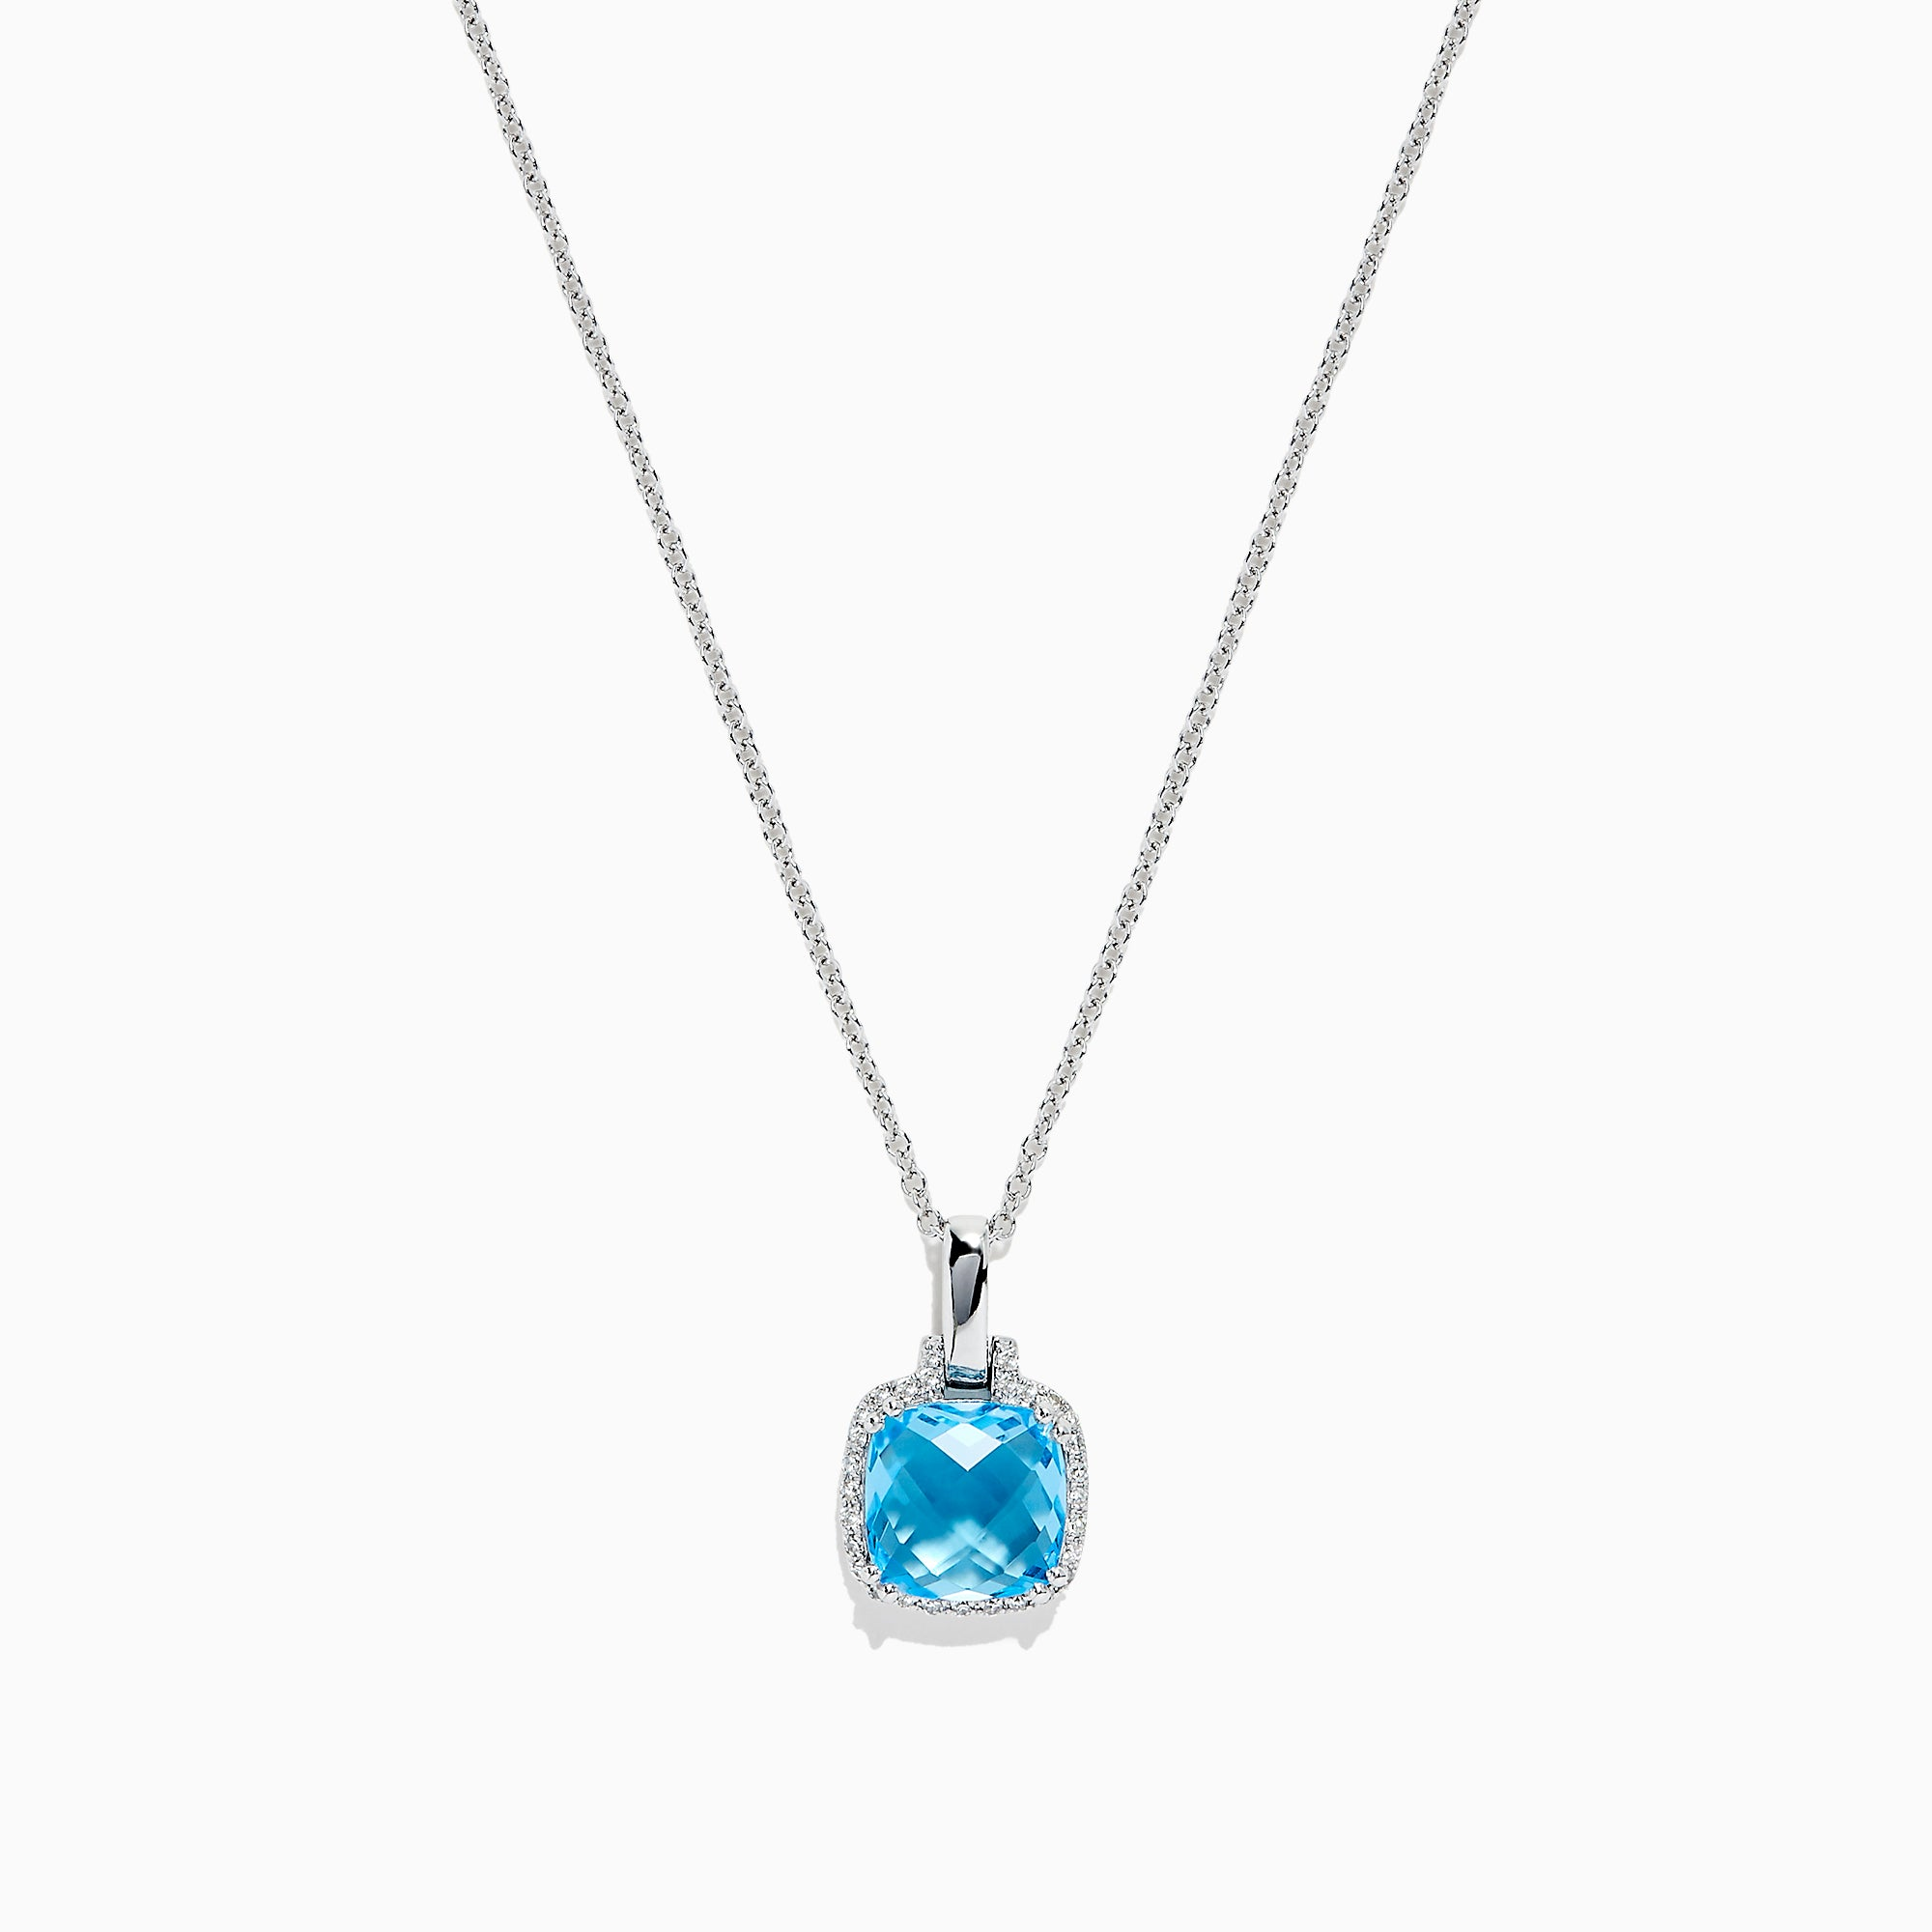 Effy 14K White Gold Blue Topaz and Diamond Pendant, 3.14 TCW